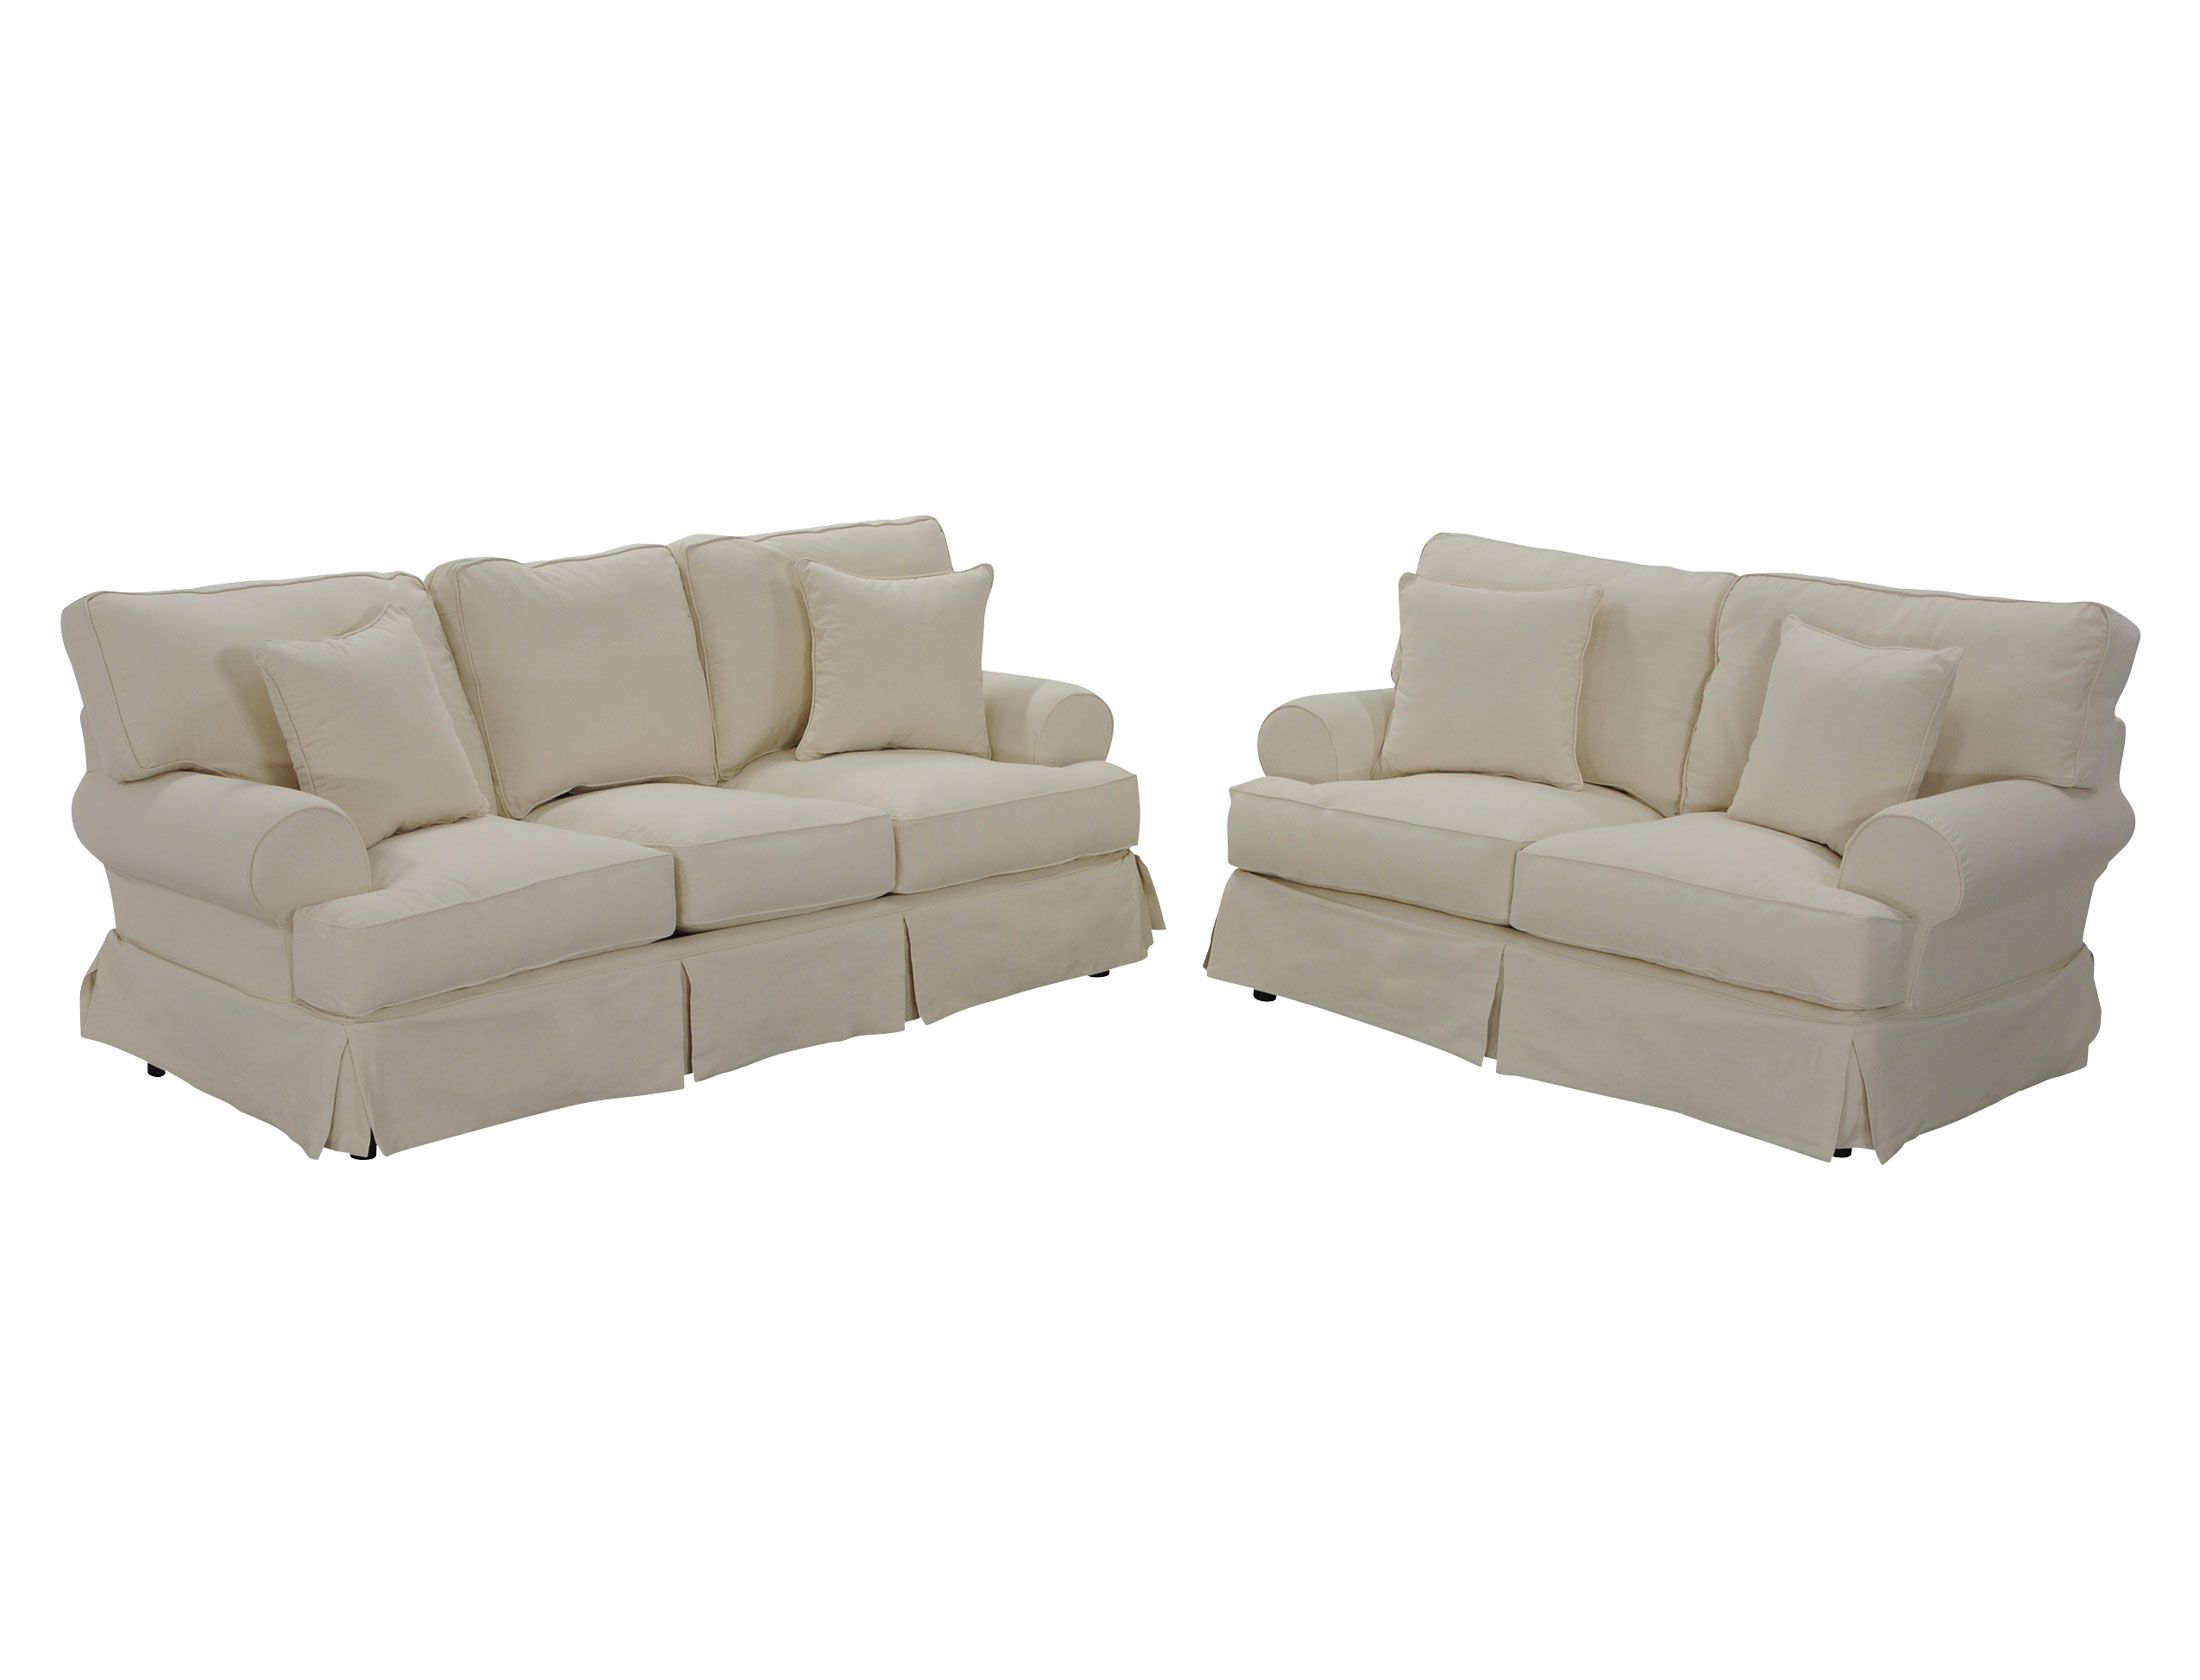 jerome's swivel chairs leg covers for classic slipcover sofa set jerome 39s furniture living